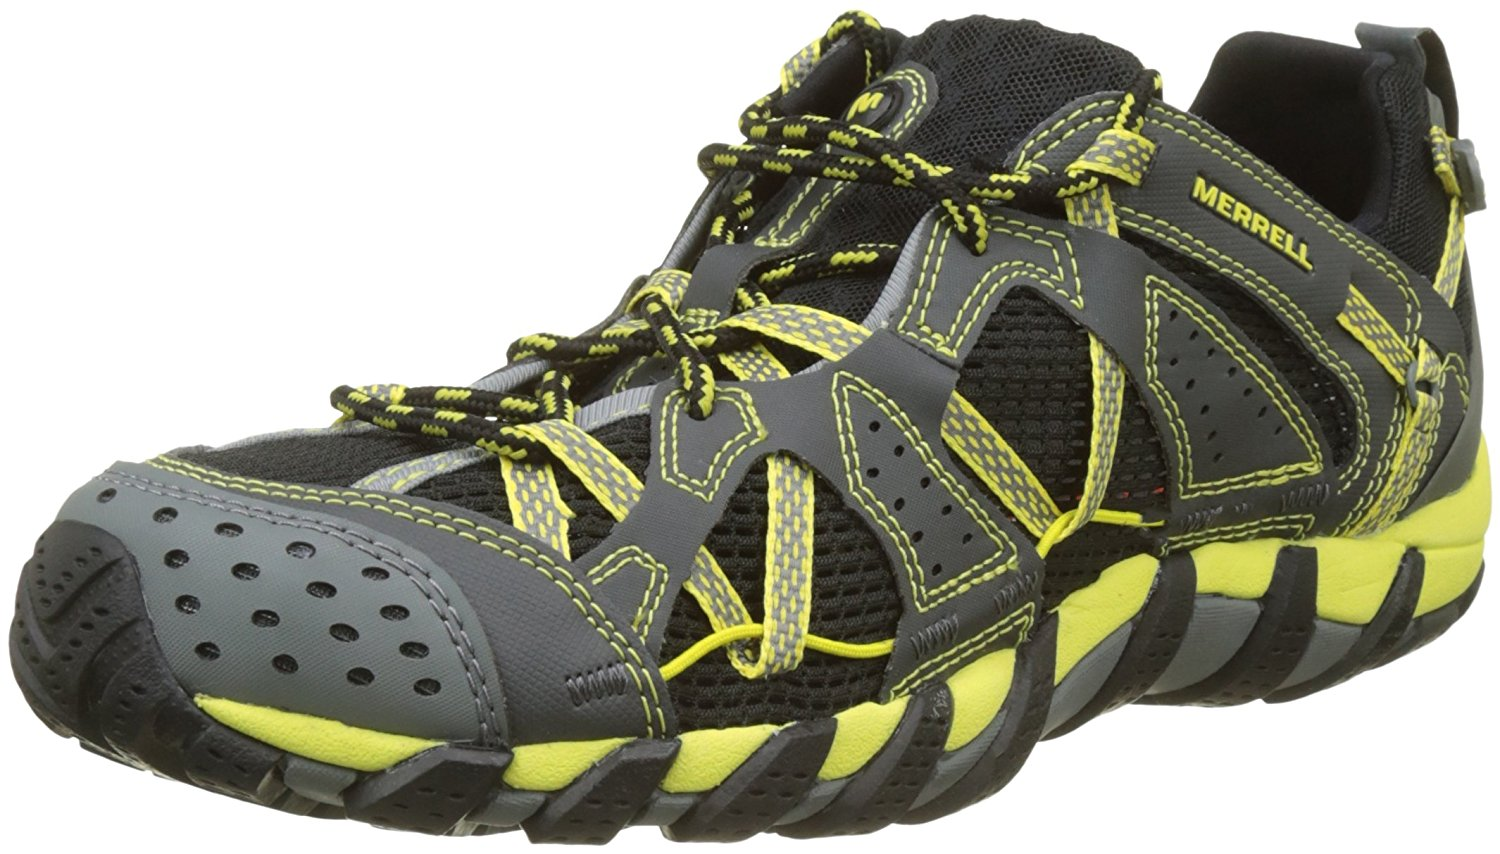 a15f914c0ace Get Quotations · Merrell Waterpro Maipo Watersport Shoes 10.5 D(M) US Black